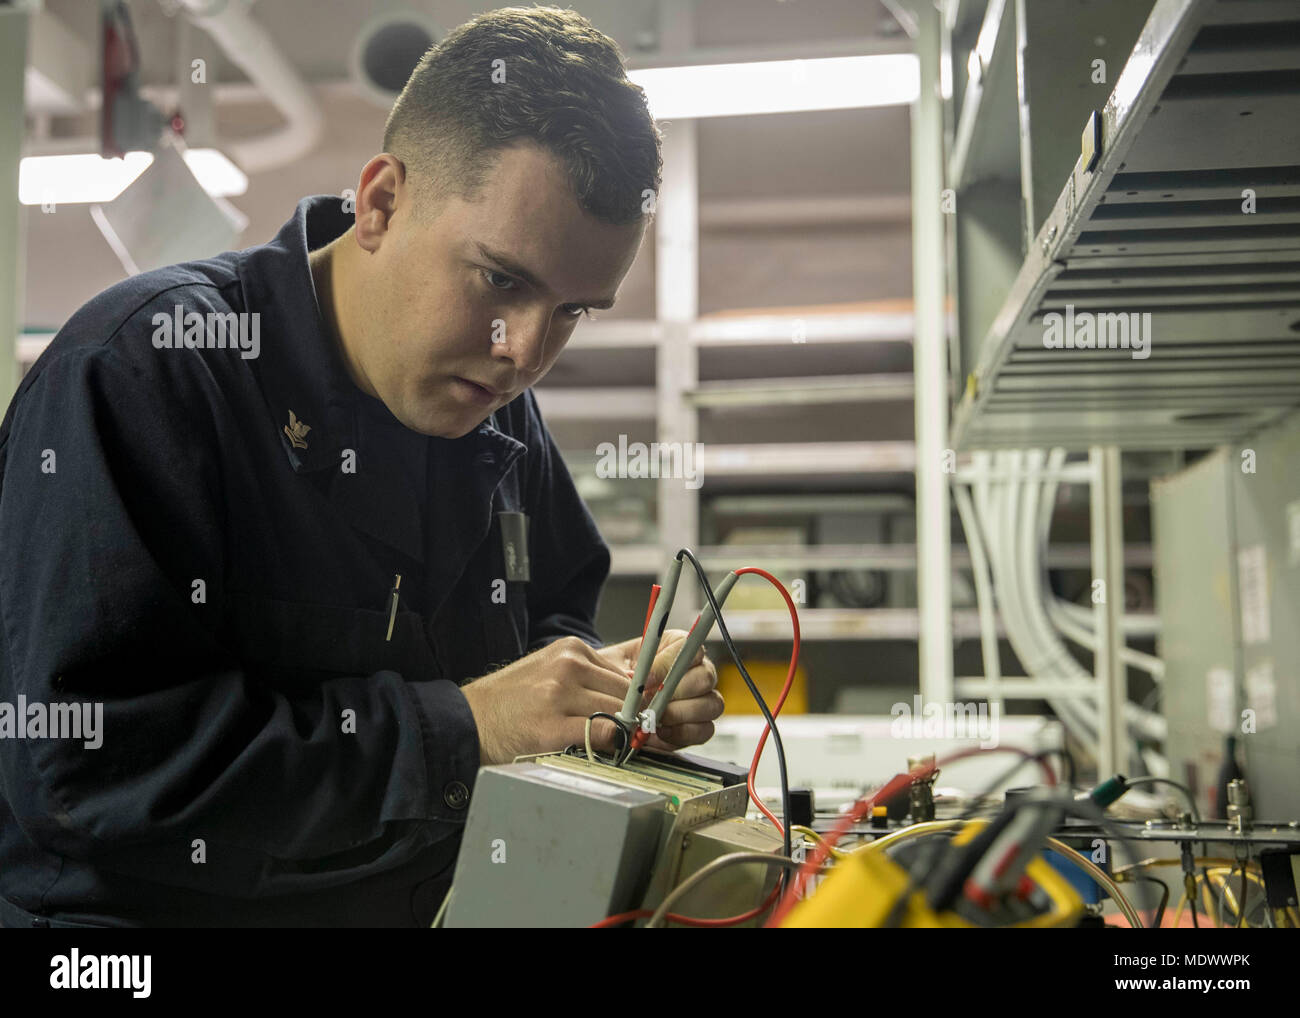 ATLANTIC OCEAN (Dec. 9, 2017) Aviation Electronic's Technician 2nd Class Justin Milligan troubleshoots a radar altimeter in the instrument shop aboard the Nimitz-class aircraft carrier USS Abraham Lincoln (CVN 72). (U.S. Navy photo by Mass Communication Specialist 3rd Class Darion Chanelle Triplett/Released) Stock Photo